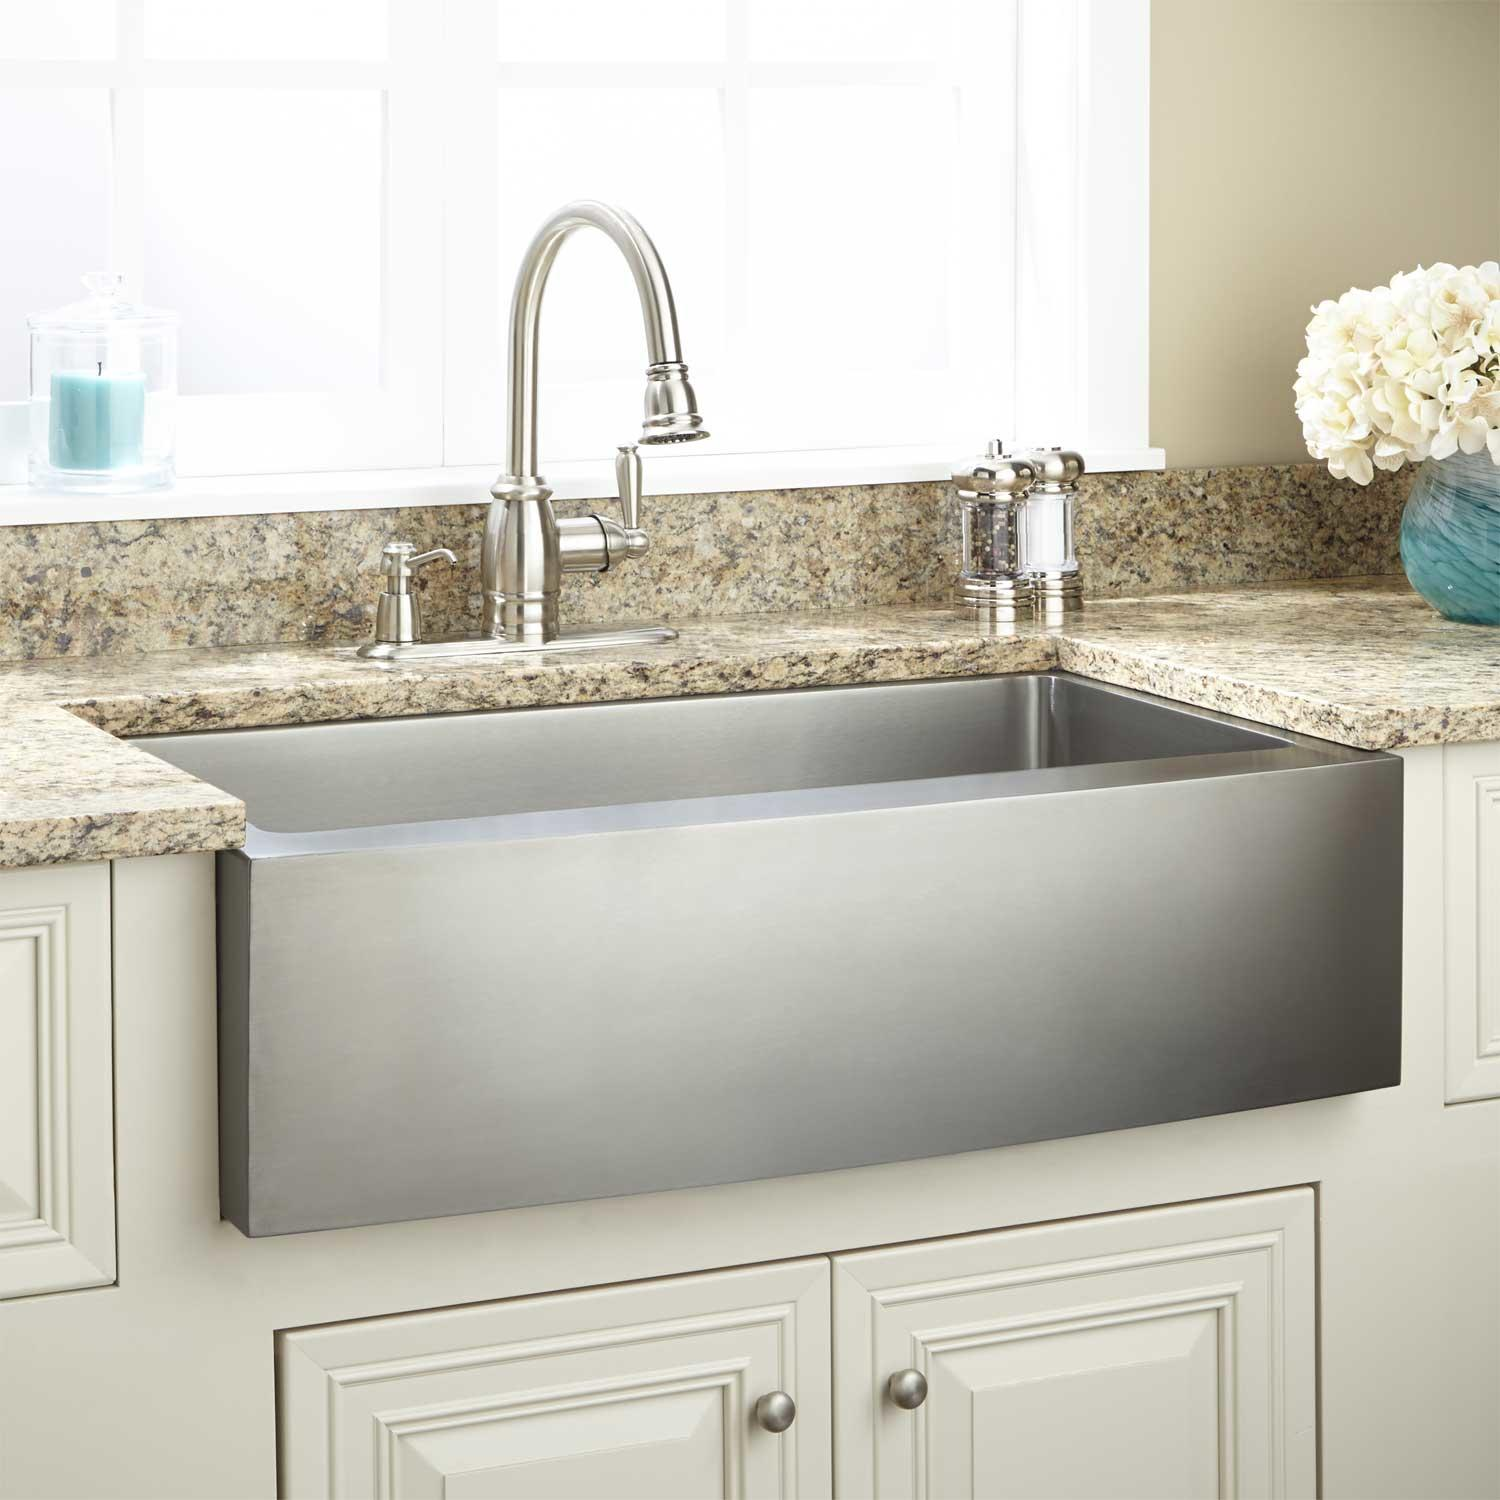 Sink Base For Farmhouse Sink : Farm Sink for 24 Cabinet Base?-285636-l-optimum-stainless-steel ...